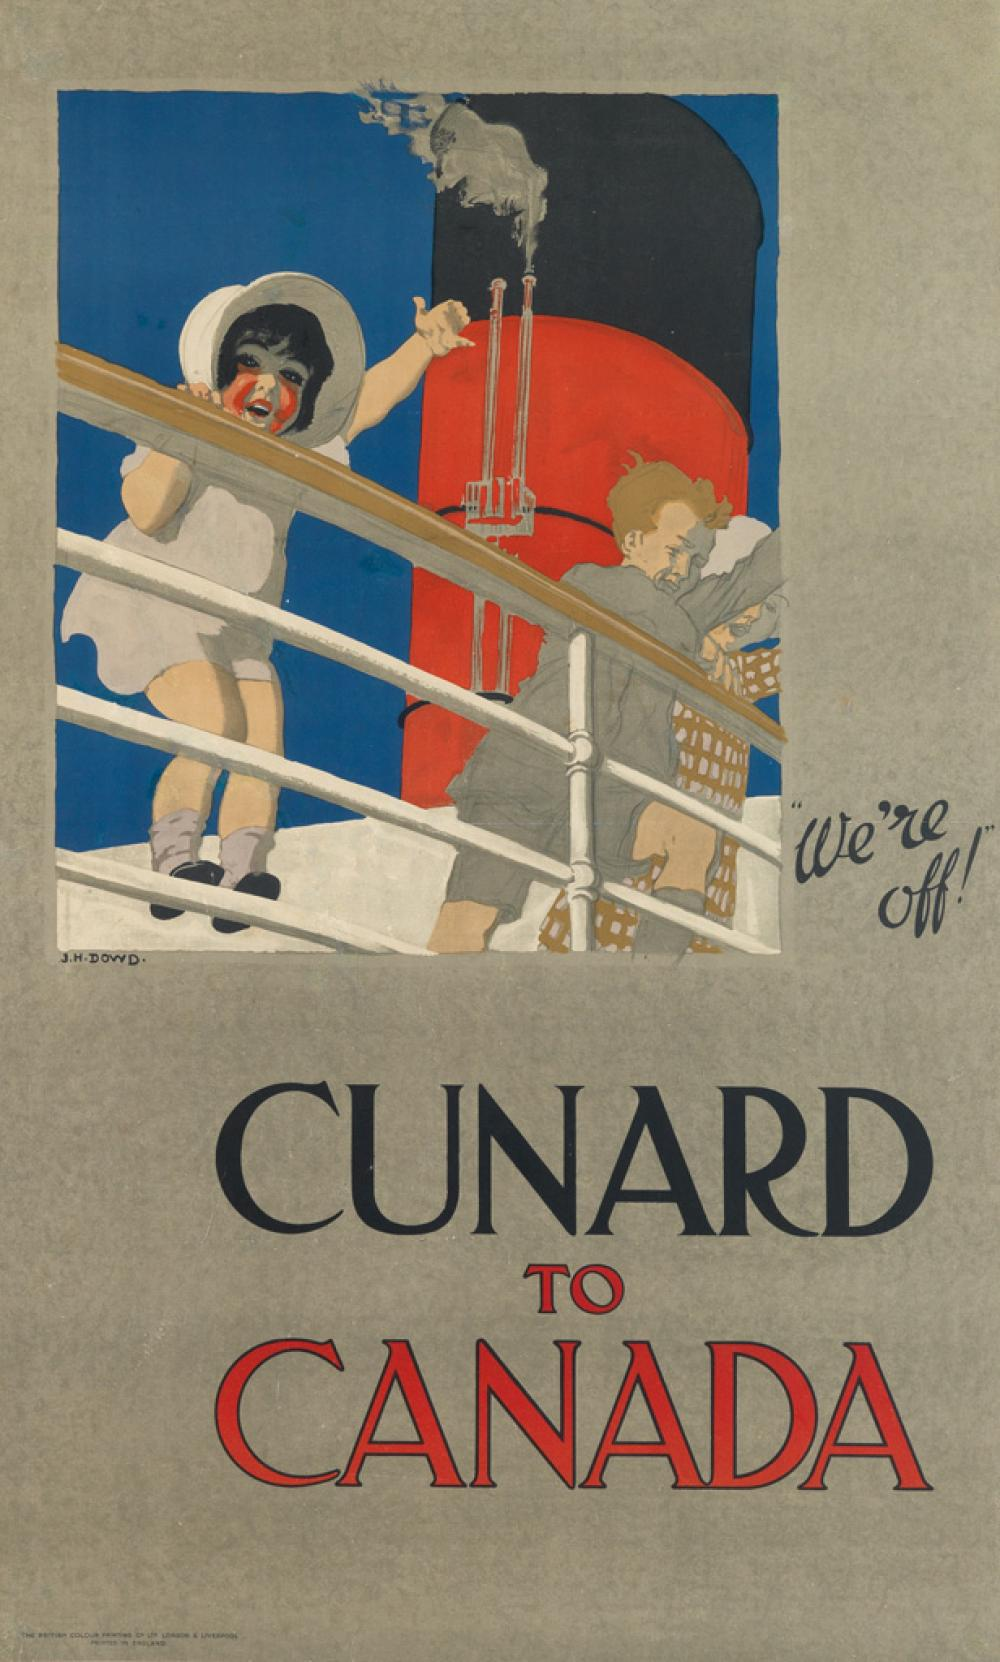 J.H. DOWD (1884-1956). CUNARD TO CANADA / WE'RE OFF! 39x24 inches, 100x61 cm. The British Colour Printing Co. Ltd., London.